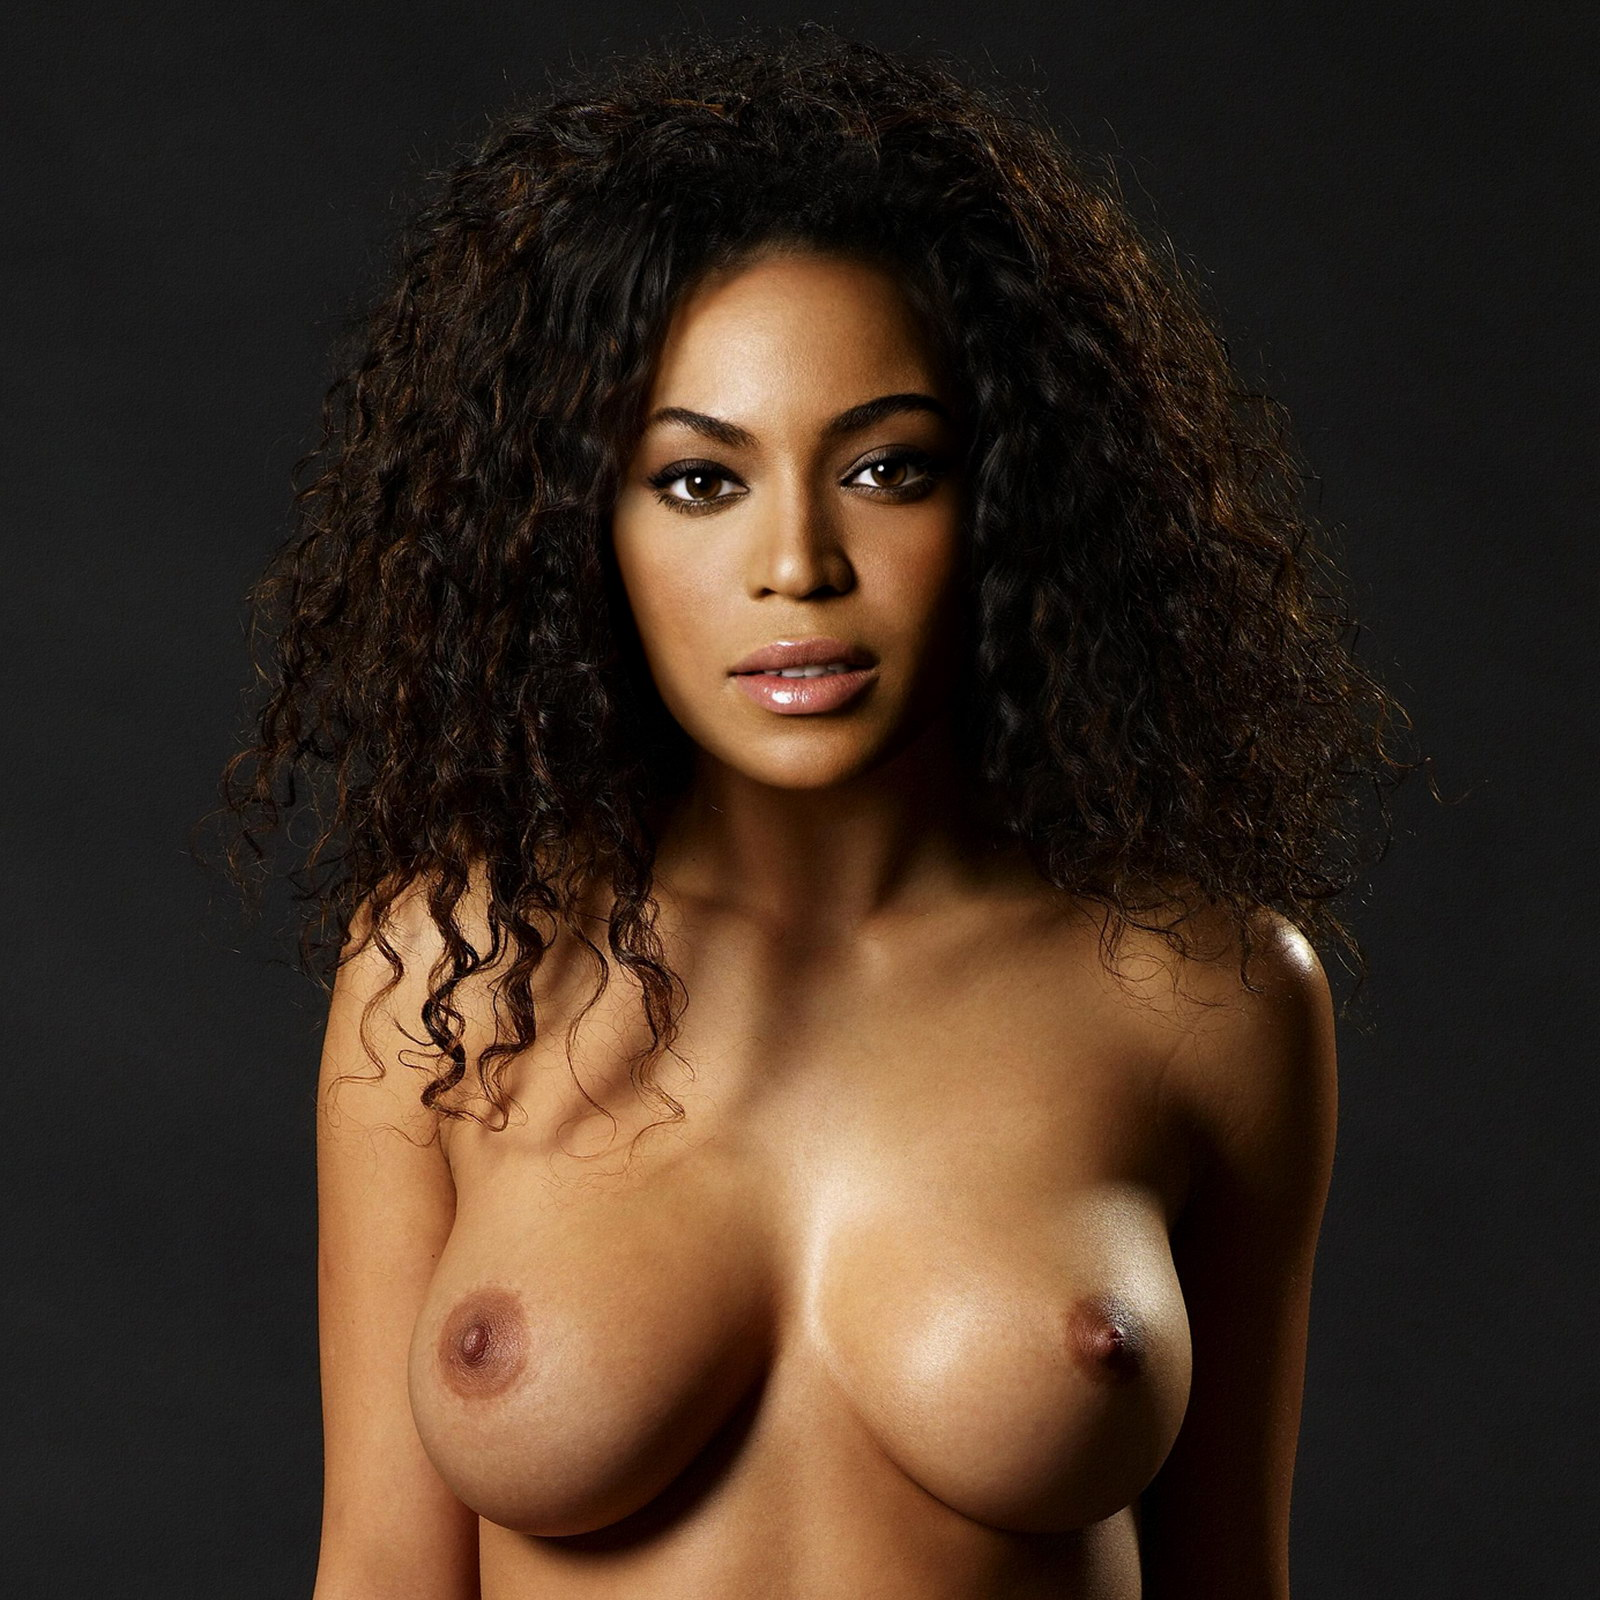 Sexy Nude Topless photo 25